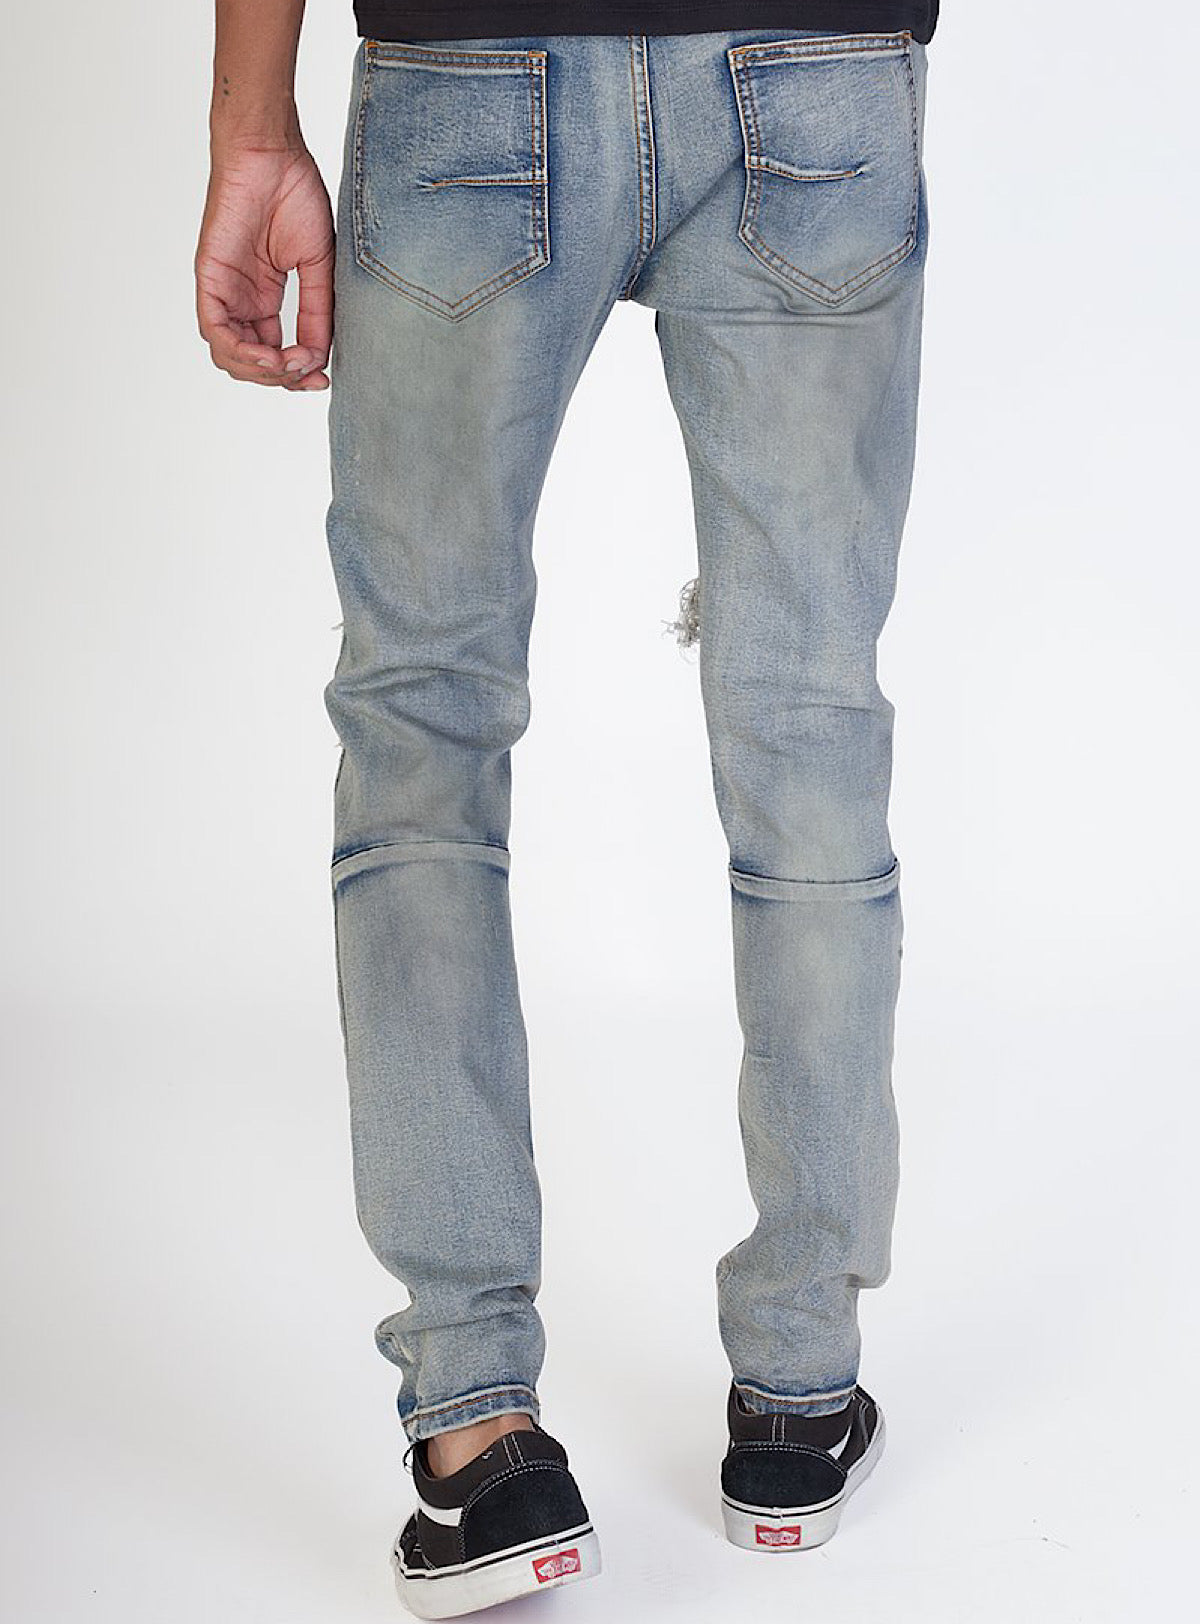 KDNK Jeans - Black Stones - Vintage Medium Blue - KND4315